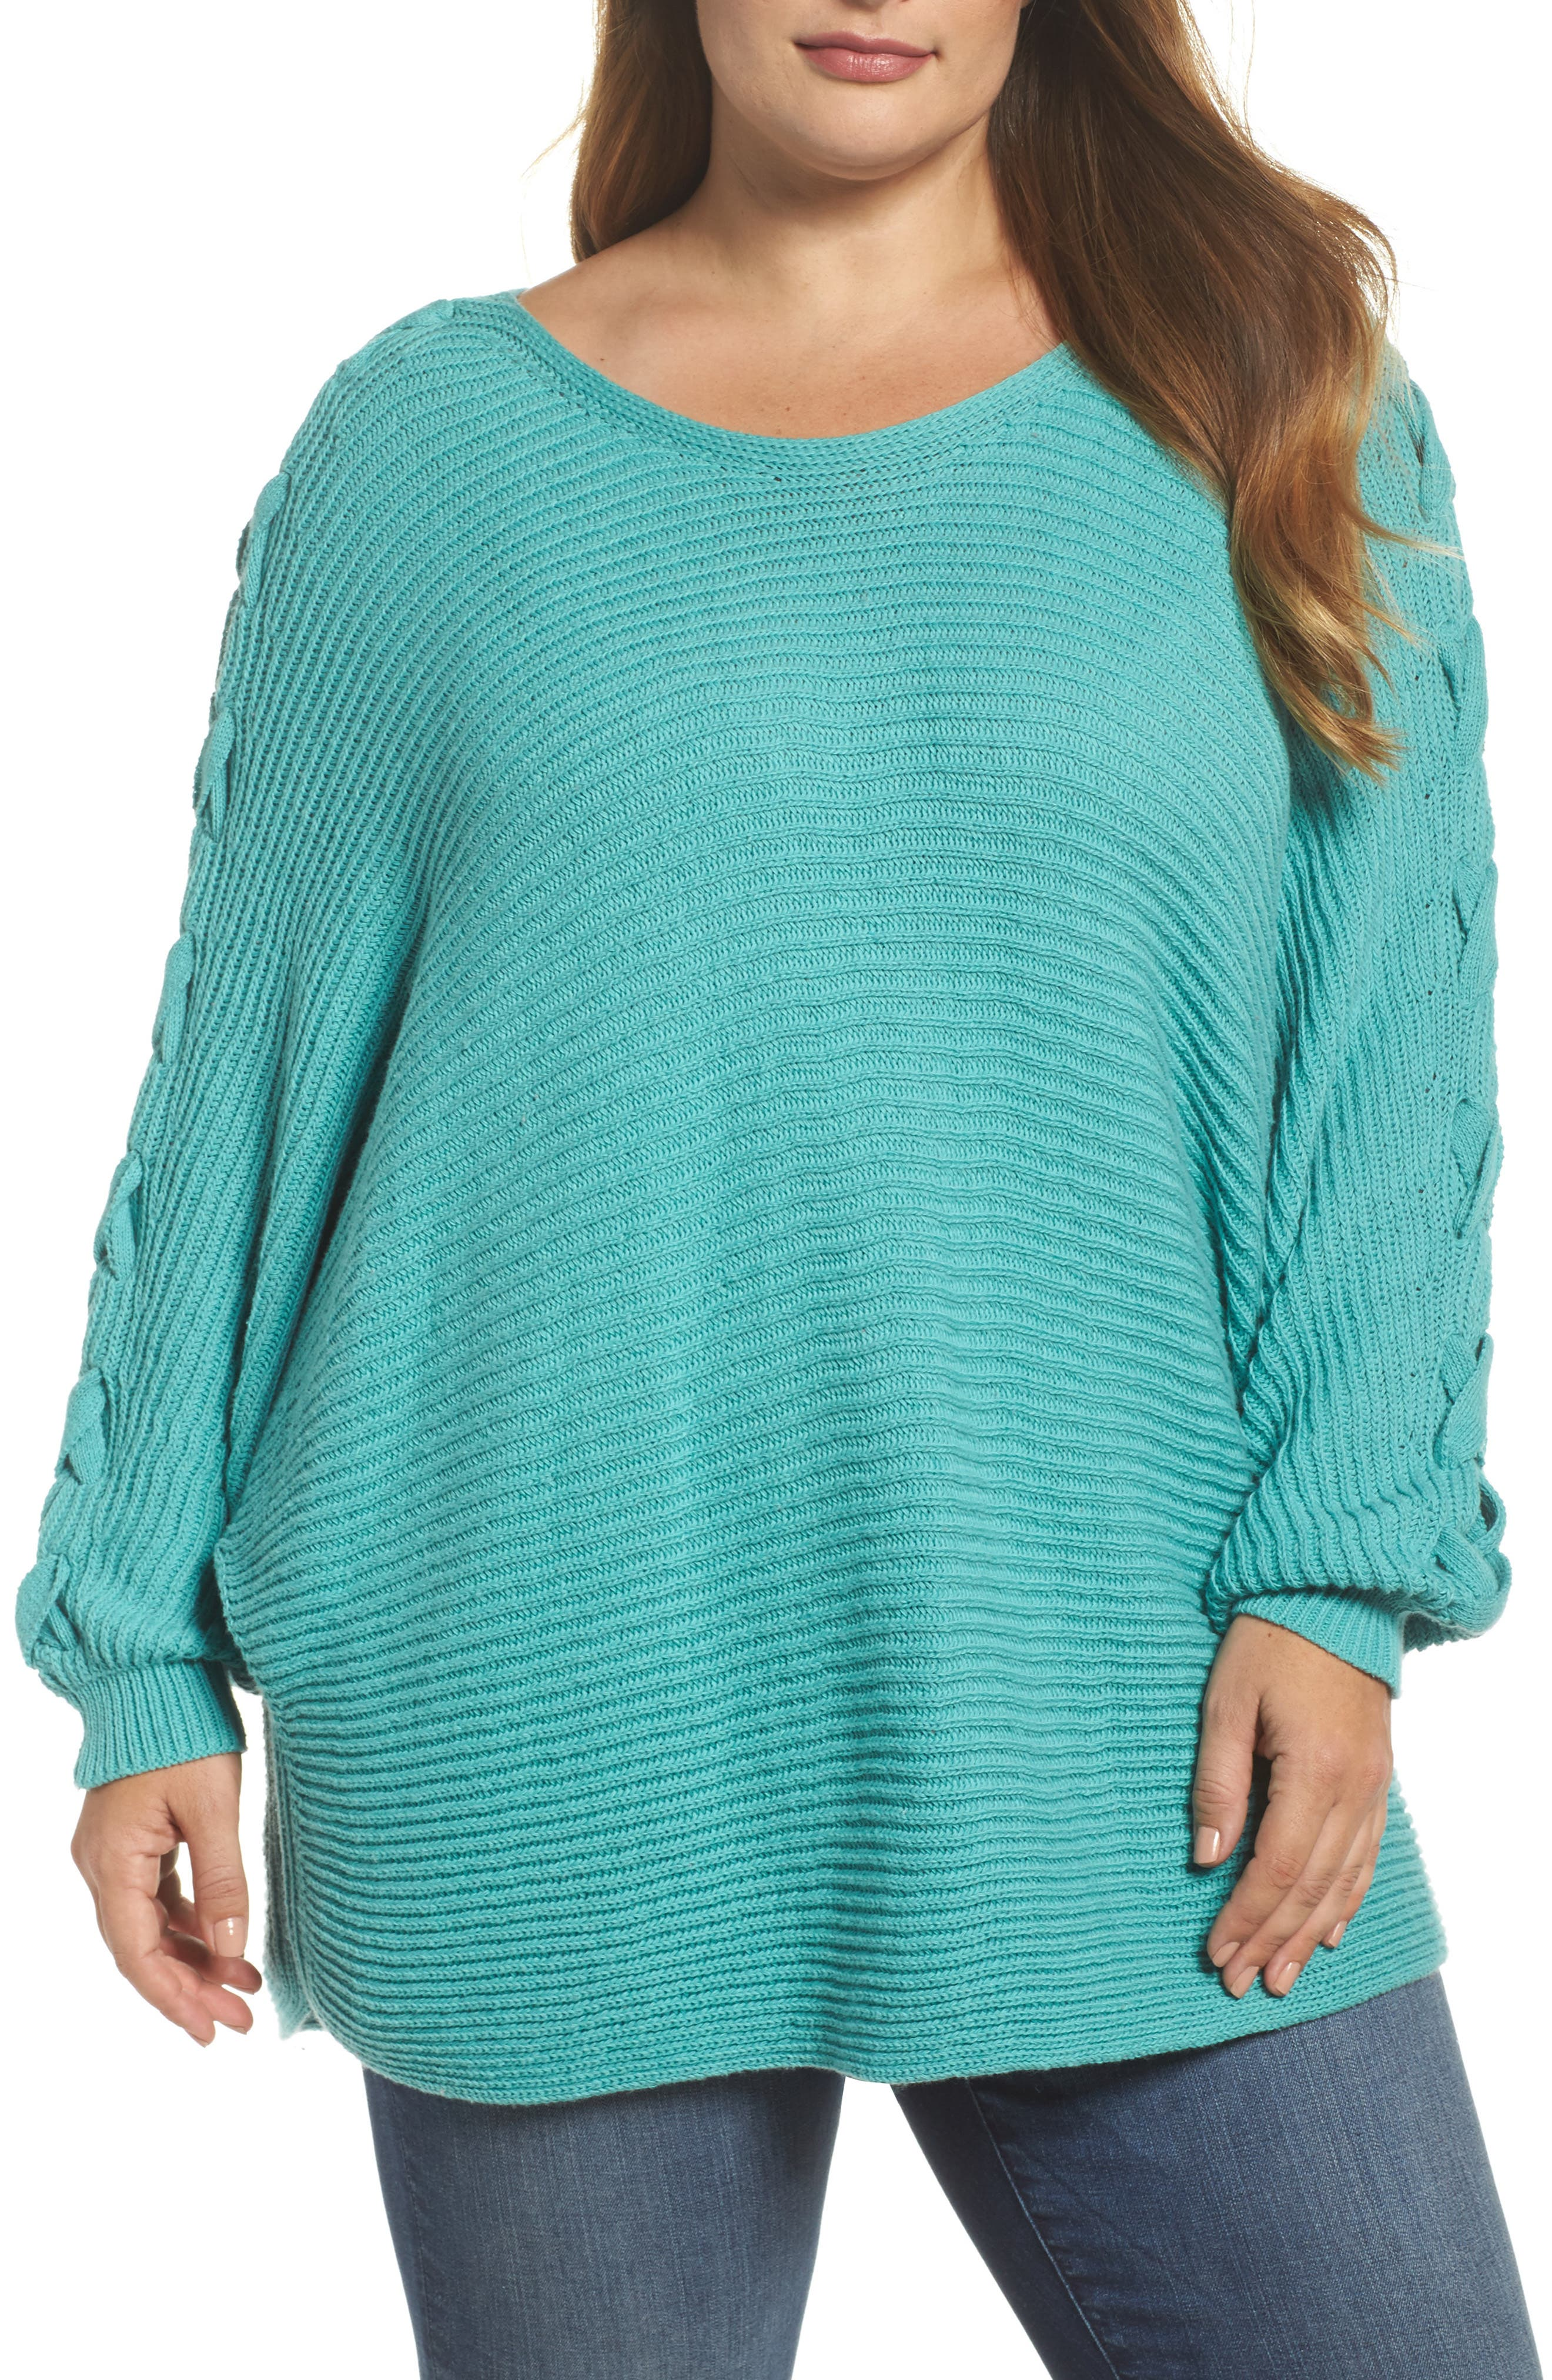 Lace-Up Sleeve Sweater,                             Main thumbnail 1, color,                             310